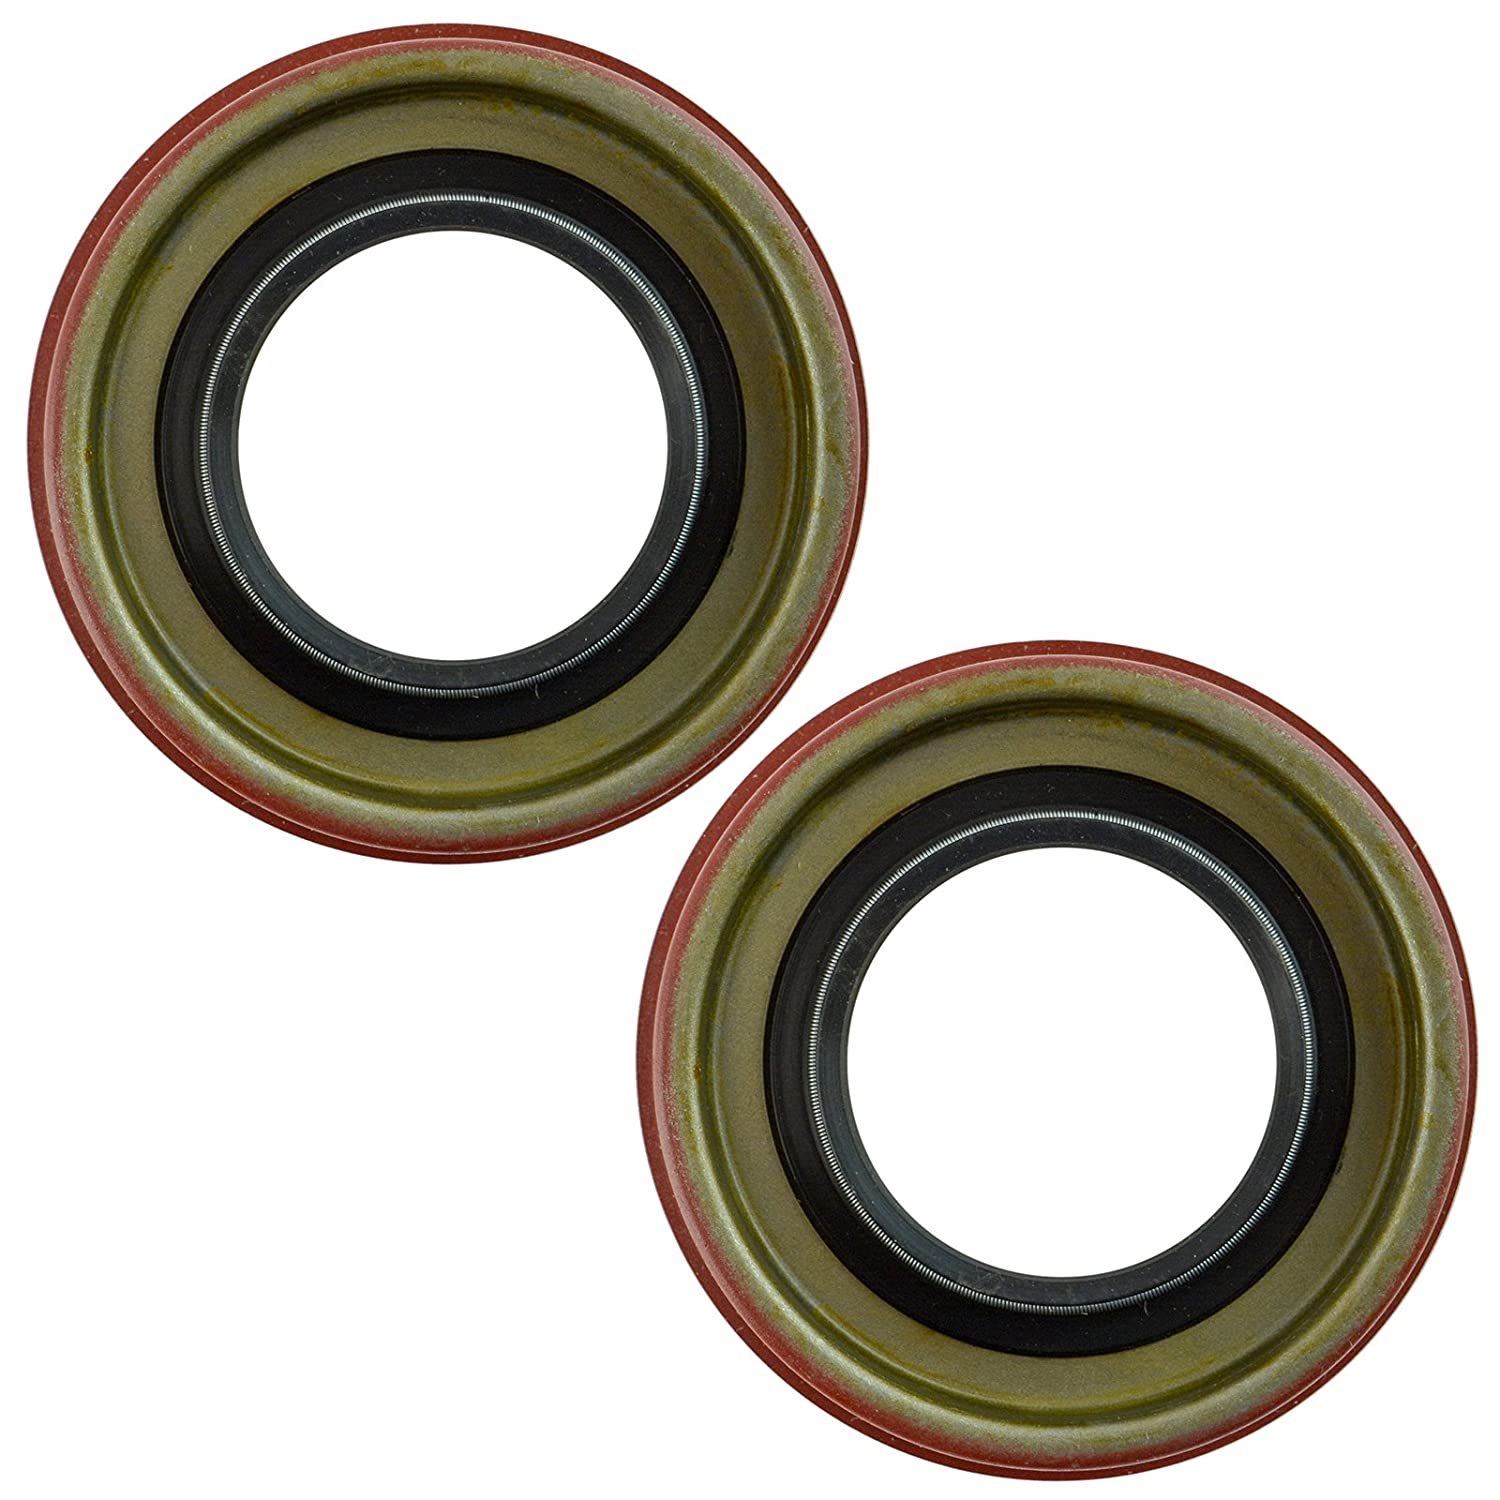 Rear Axle Wheel Seal Driver /& Passenger Side Pair for Ford F150 9.75 RG